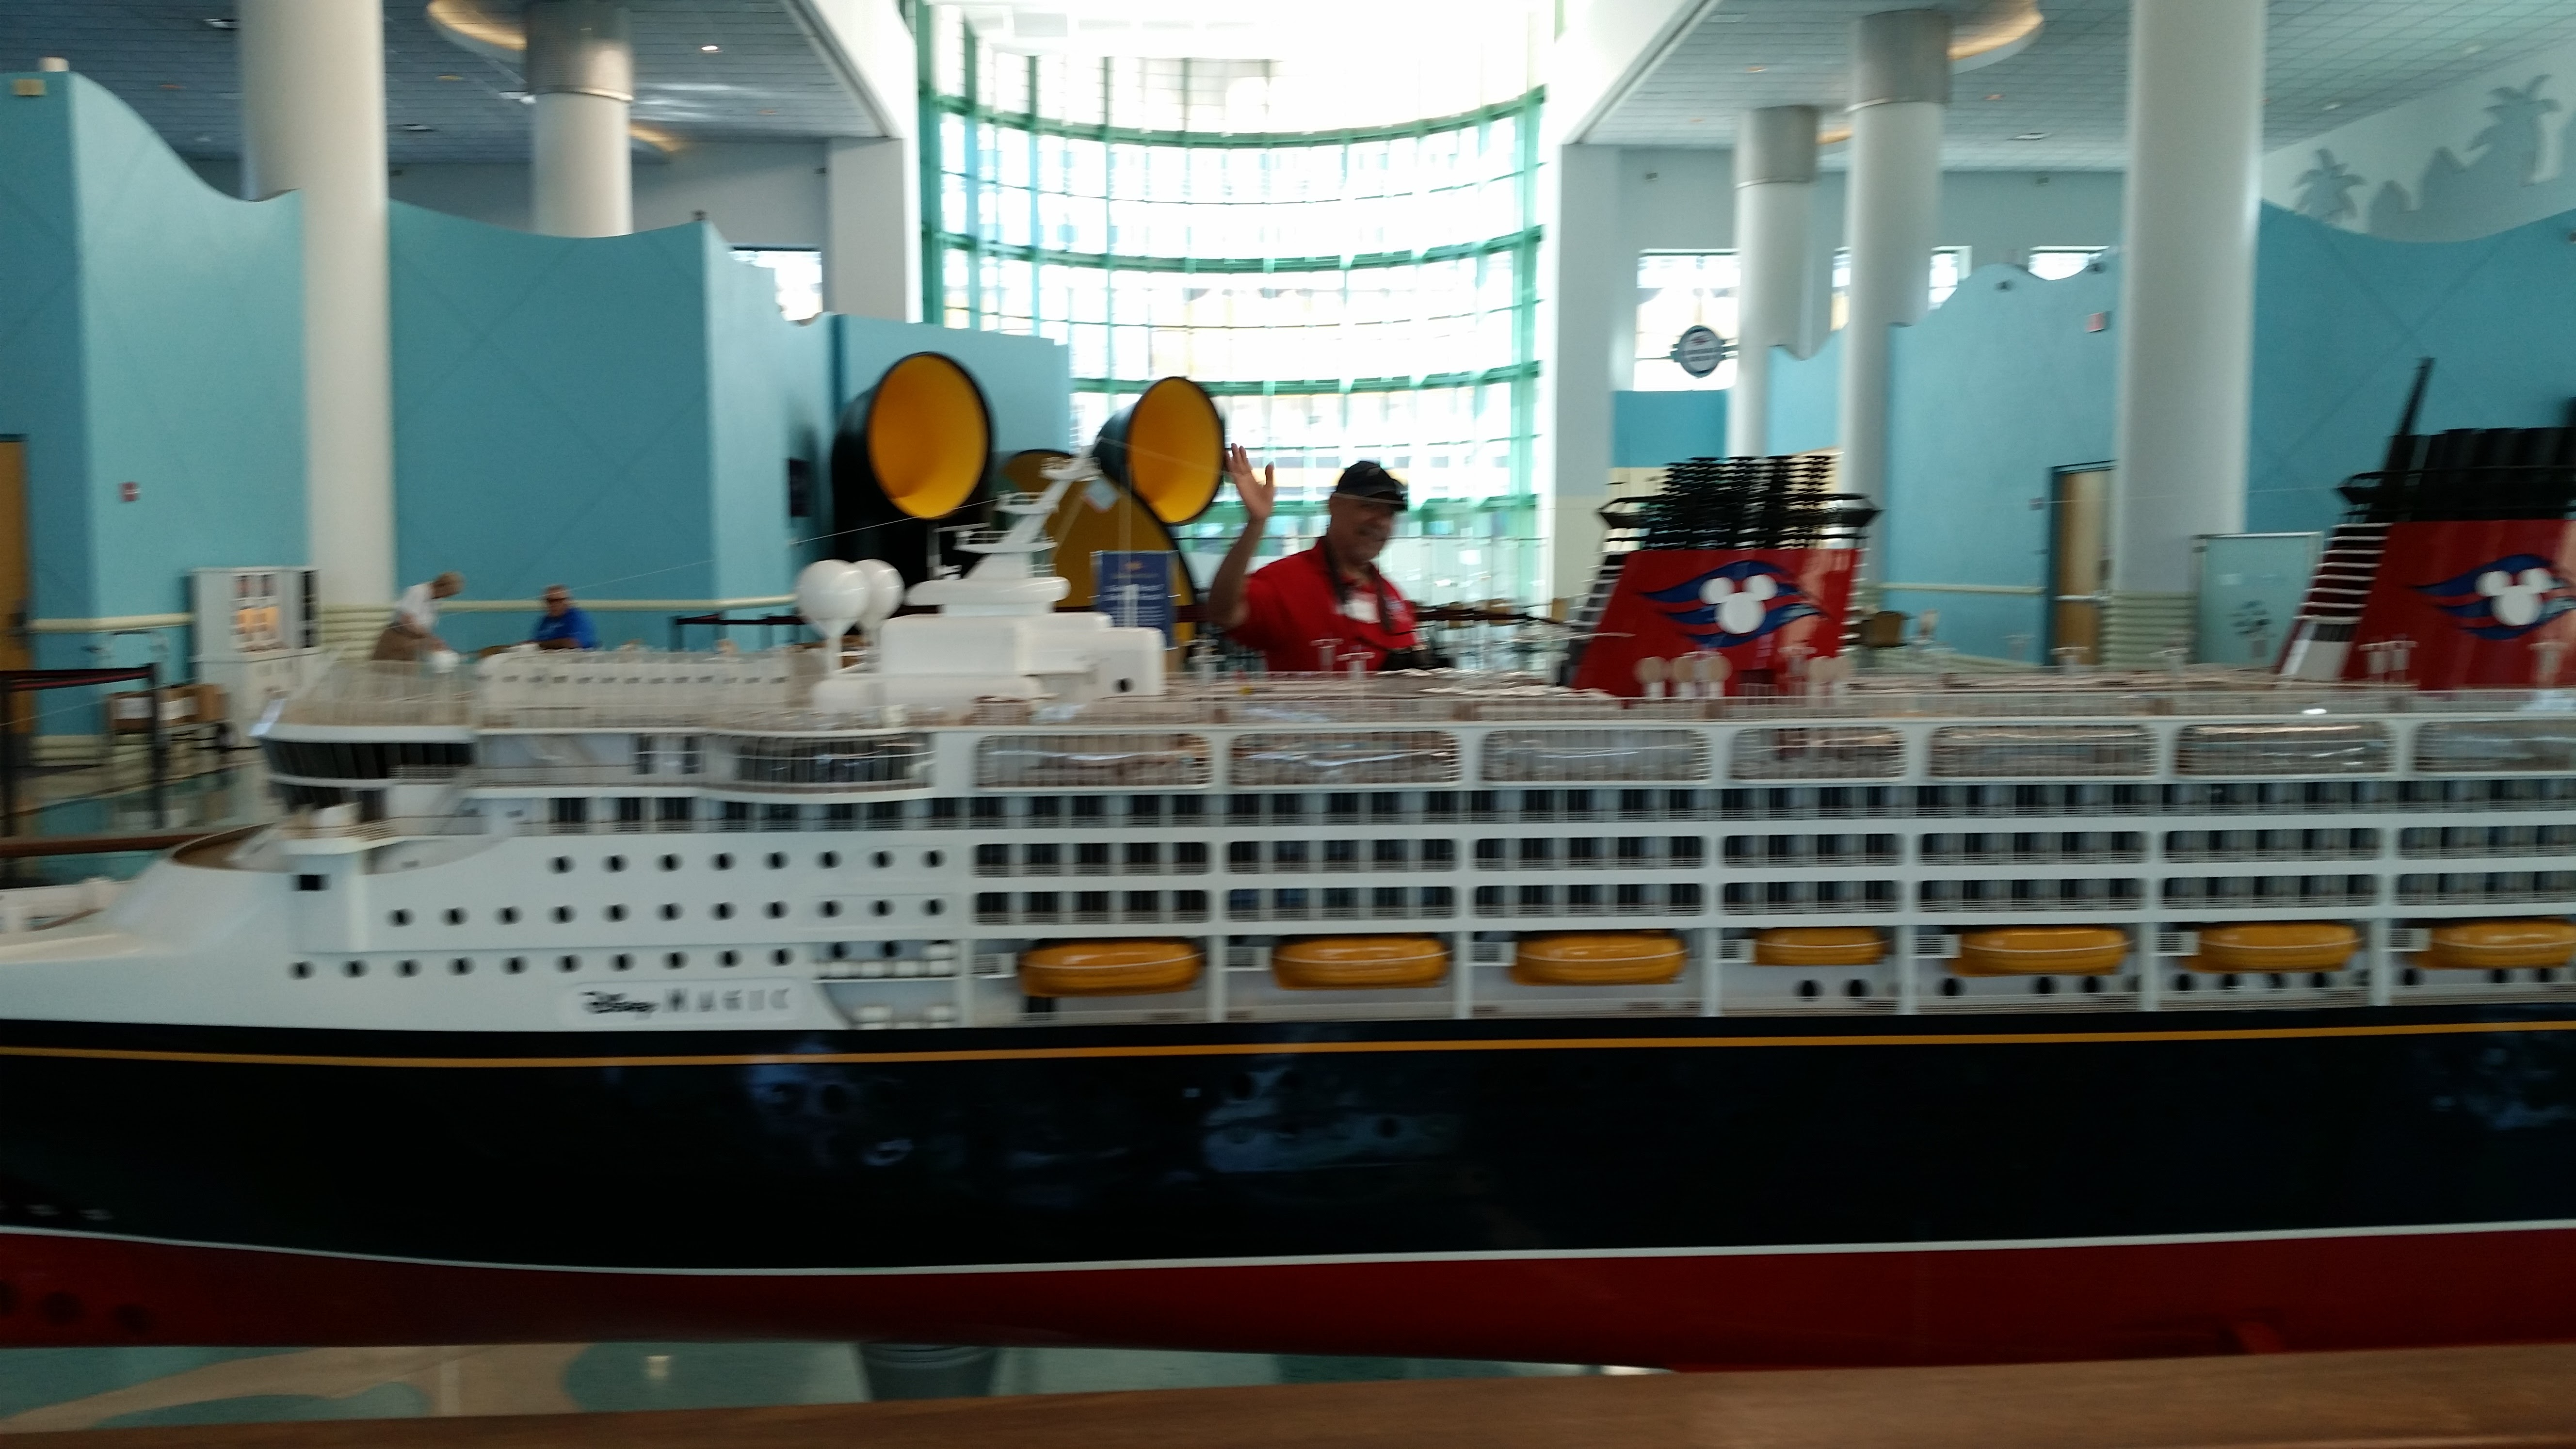 Nelson Echevarria at Disney Cruise Line Terminal in Port Canaveral in front of replica of the Disney Dream